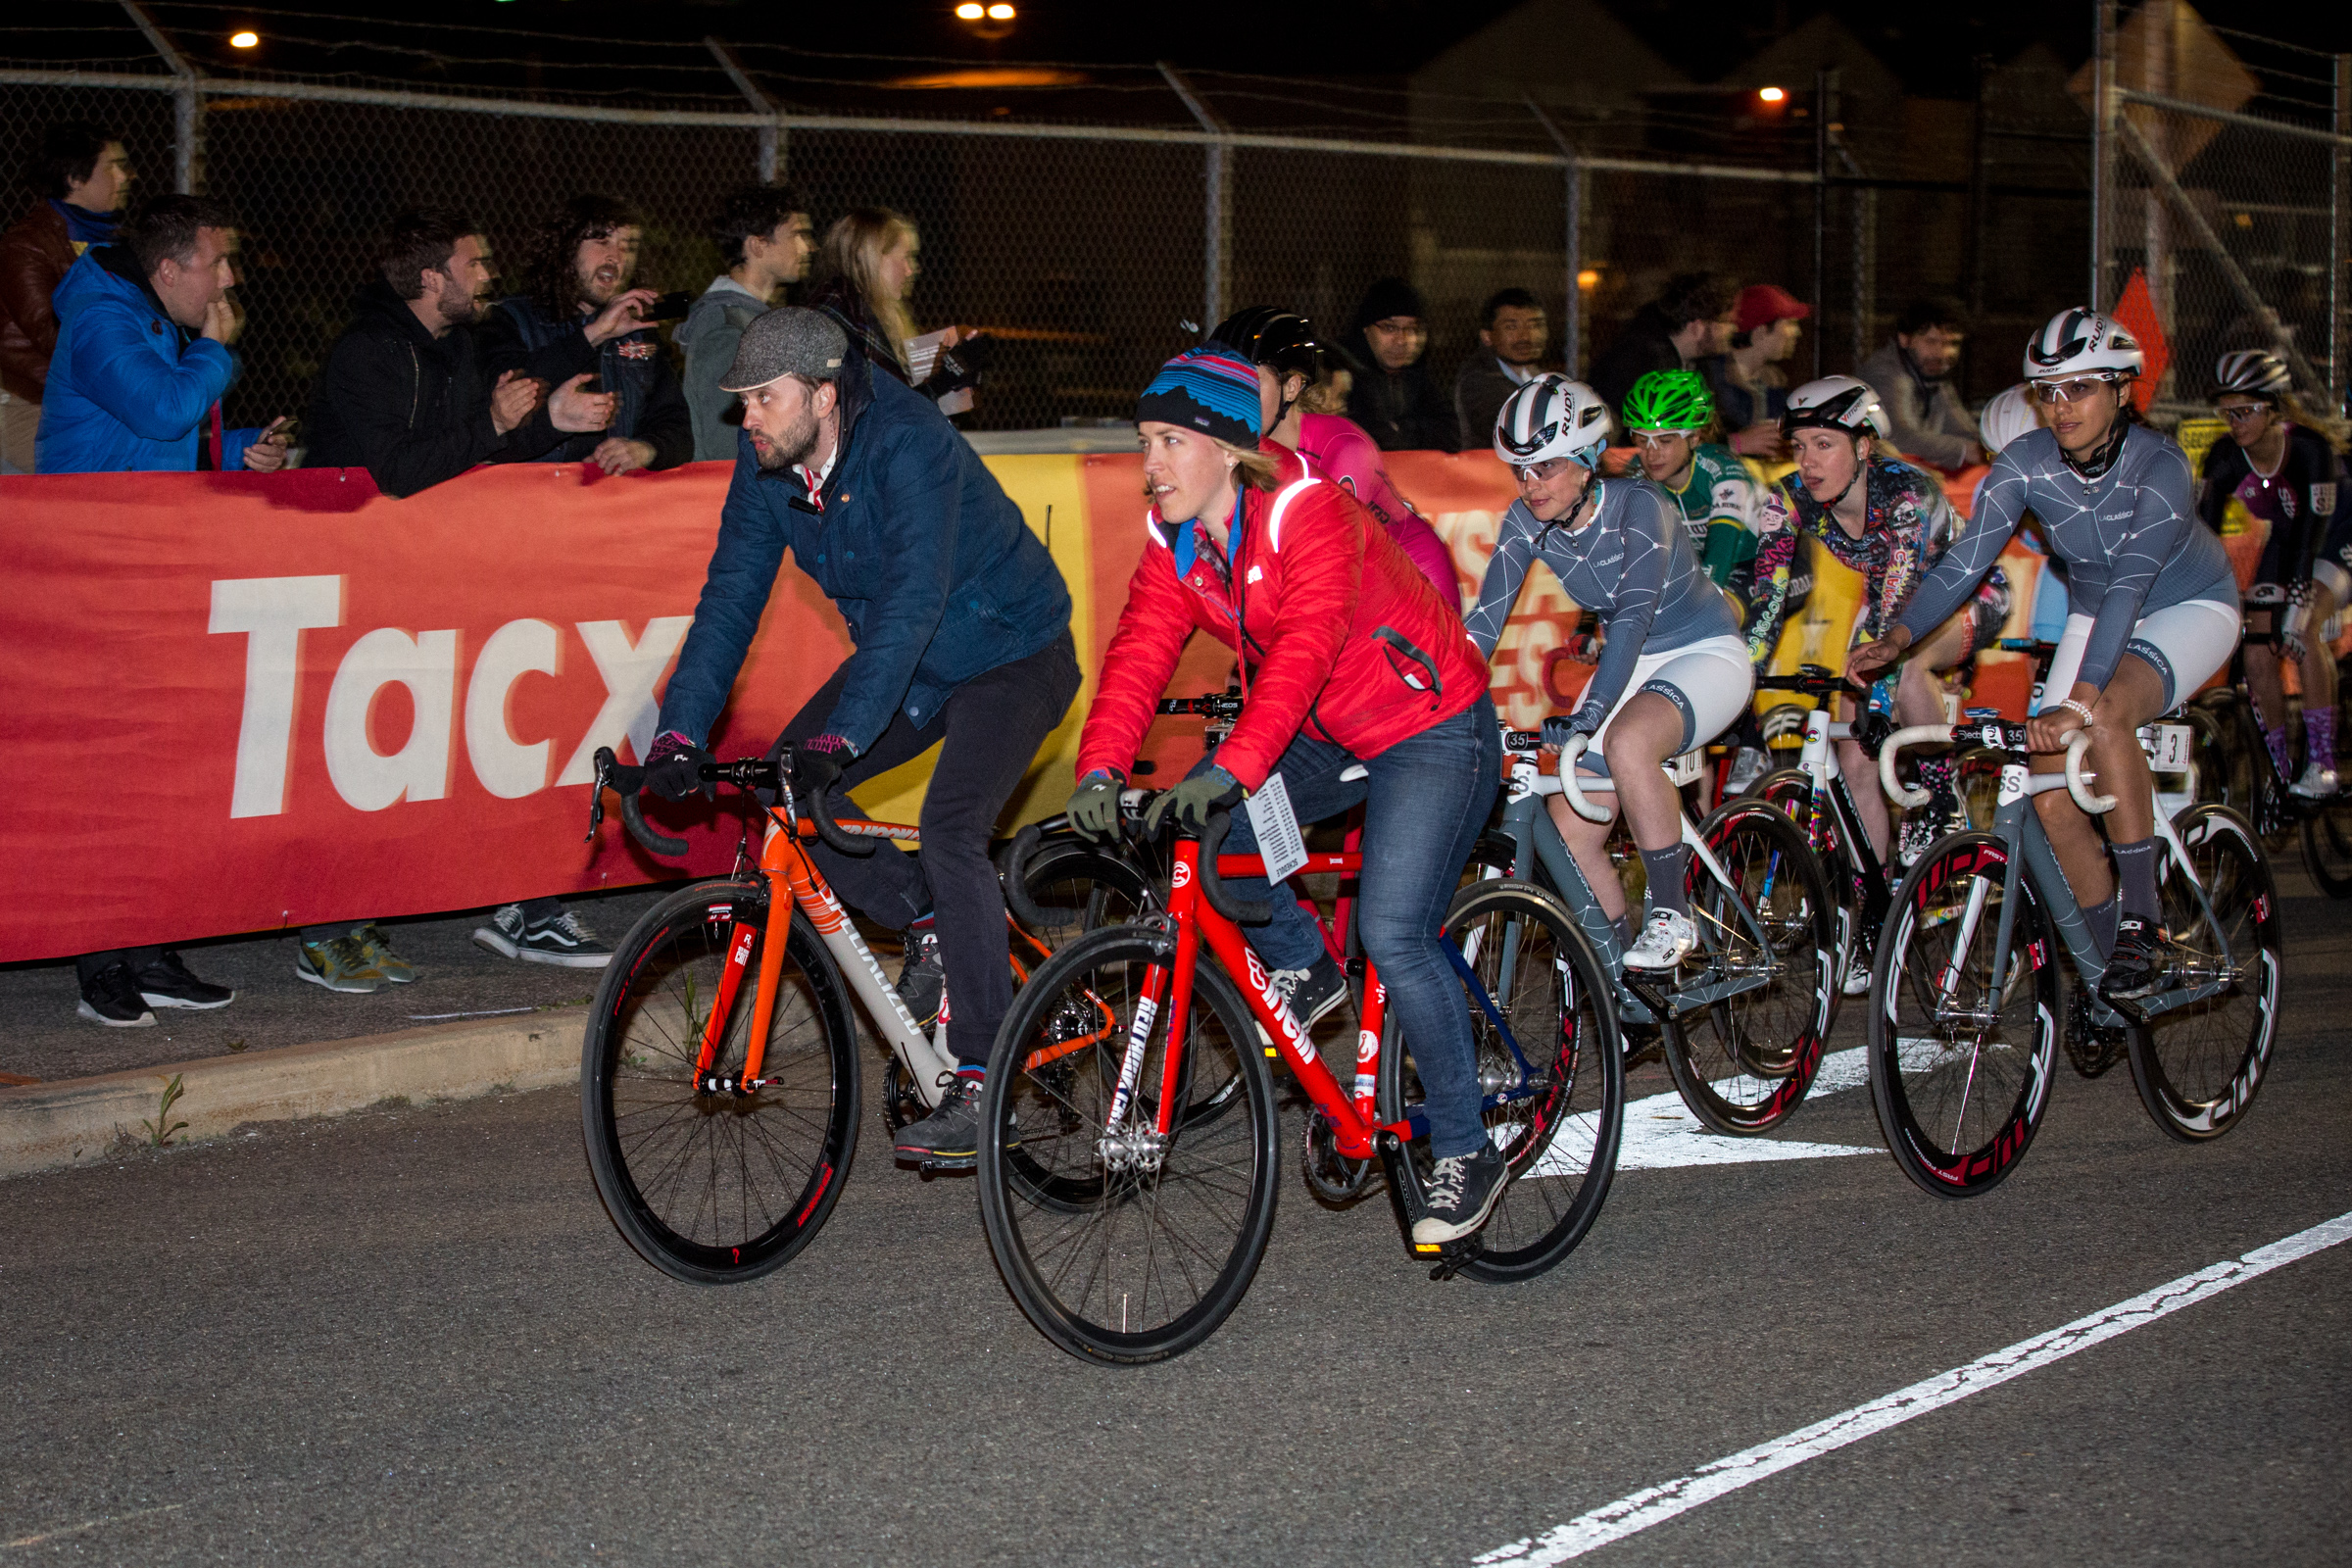 Kacey and David lead the women on a lap at RHC 9, photo courtesy of @Tornanti_cc